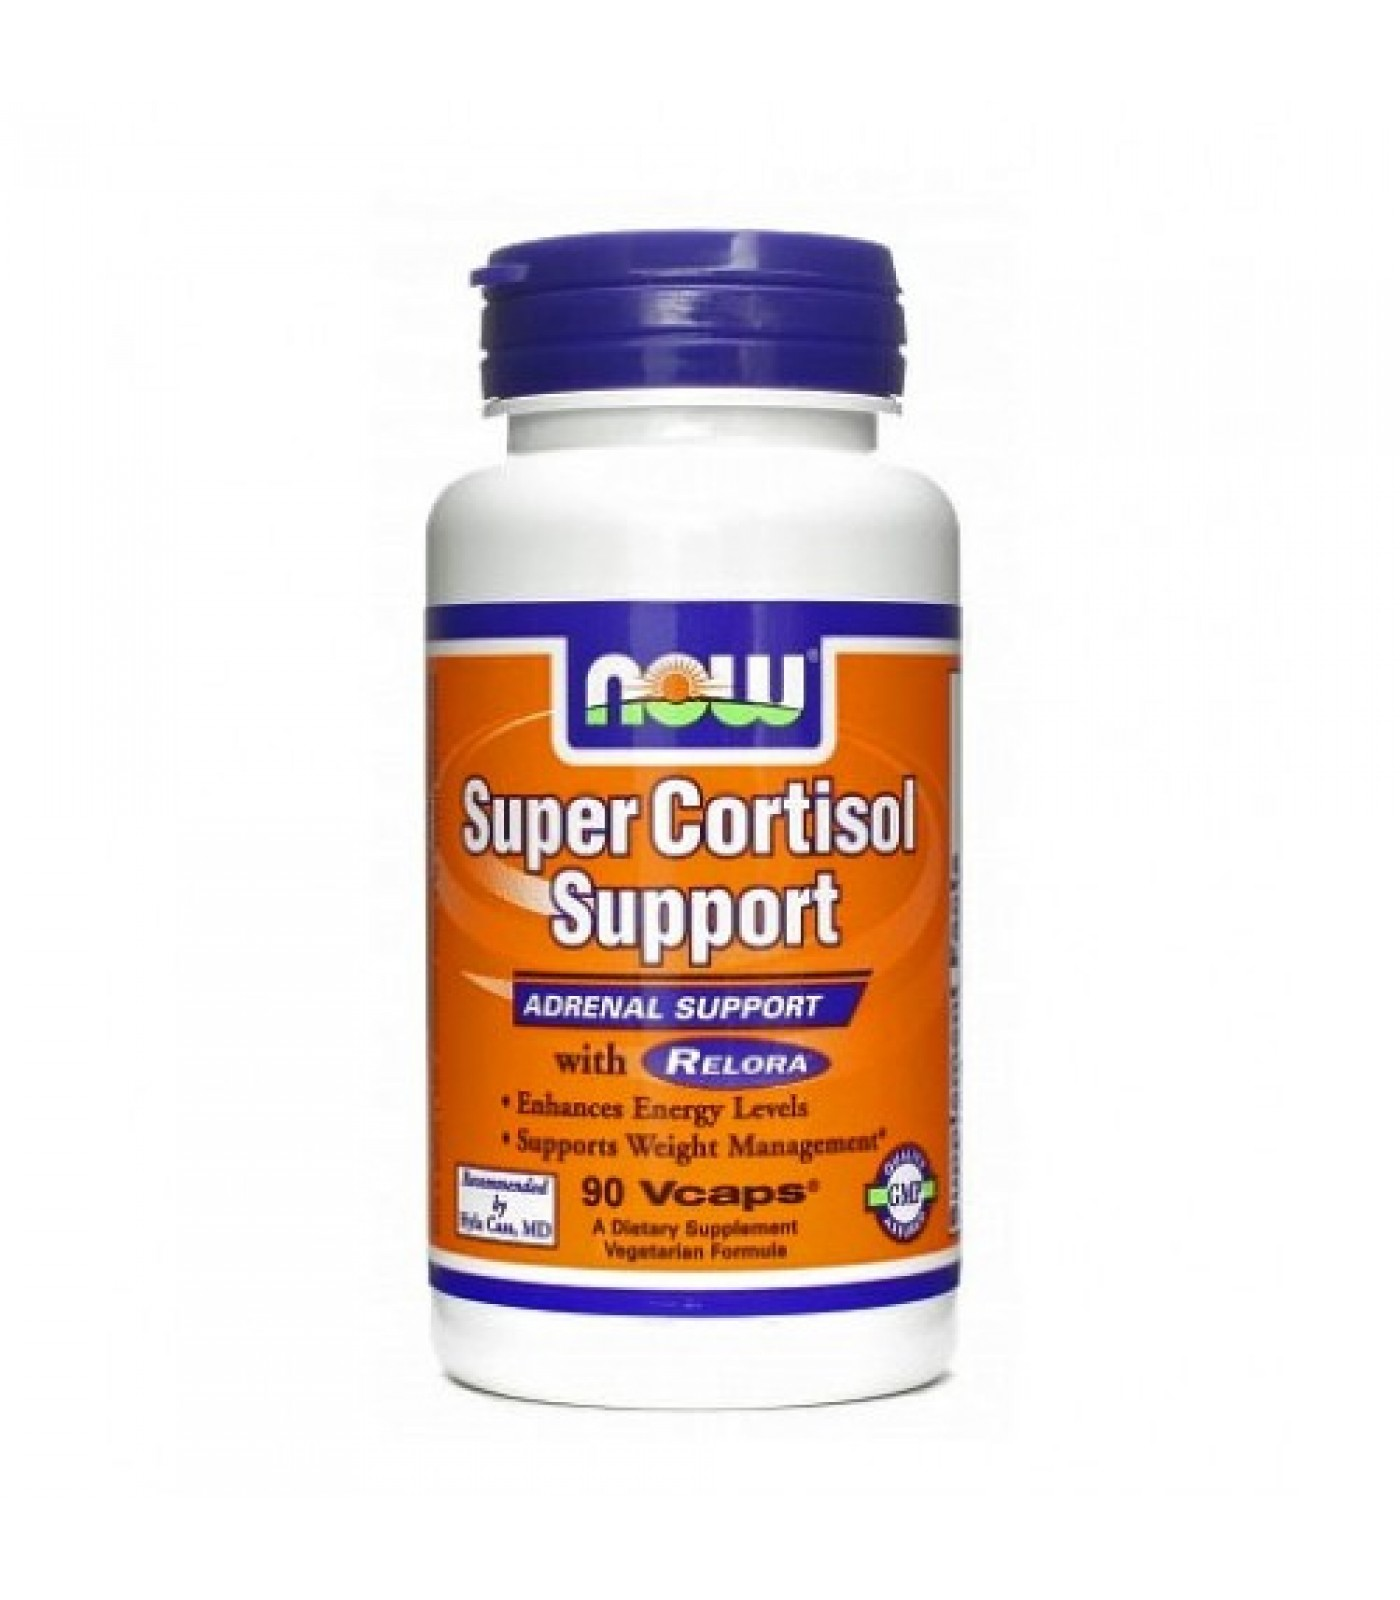 NOW - Super Cortisol Support with Relora / 90 VCaps.